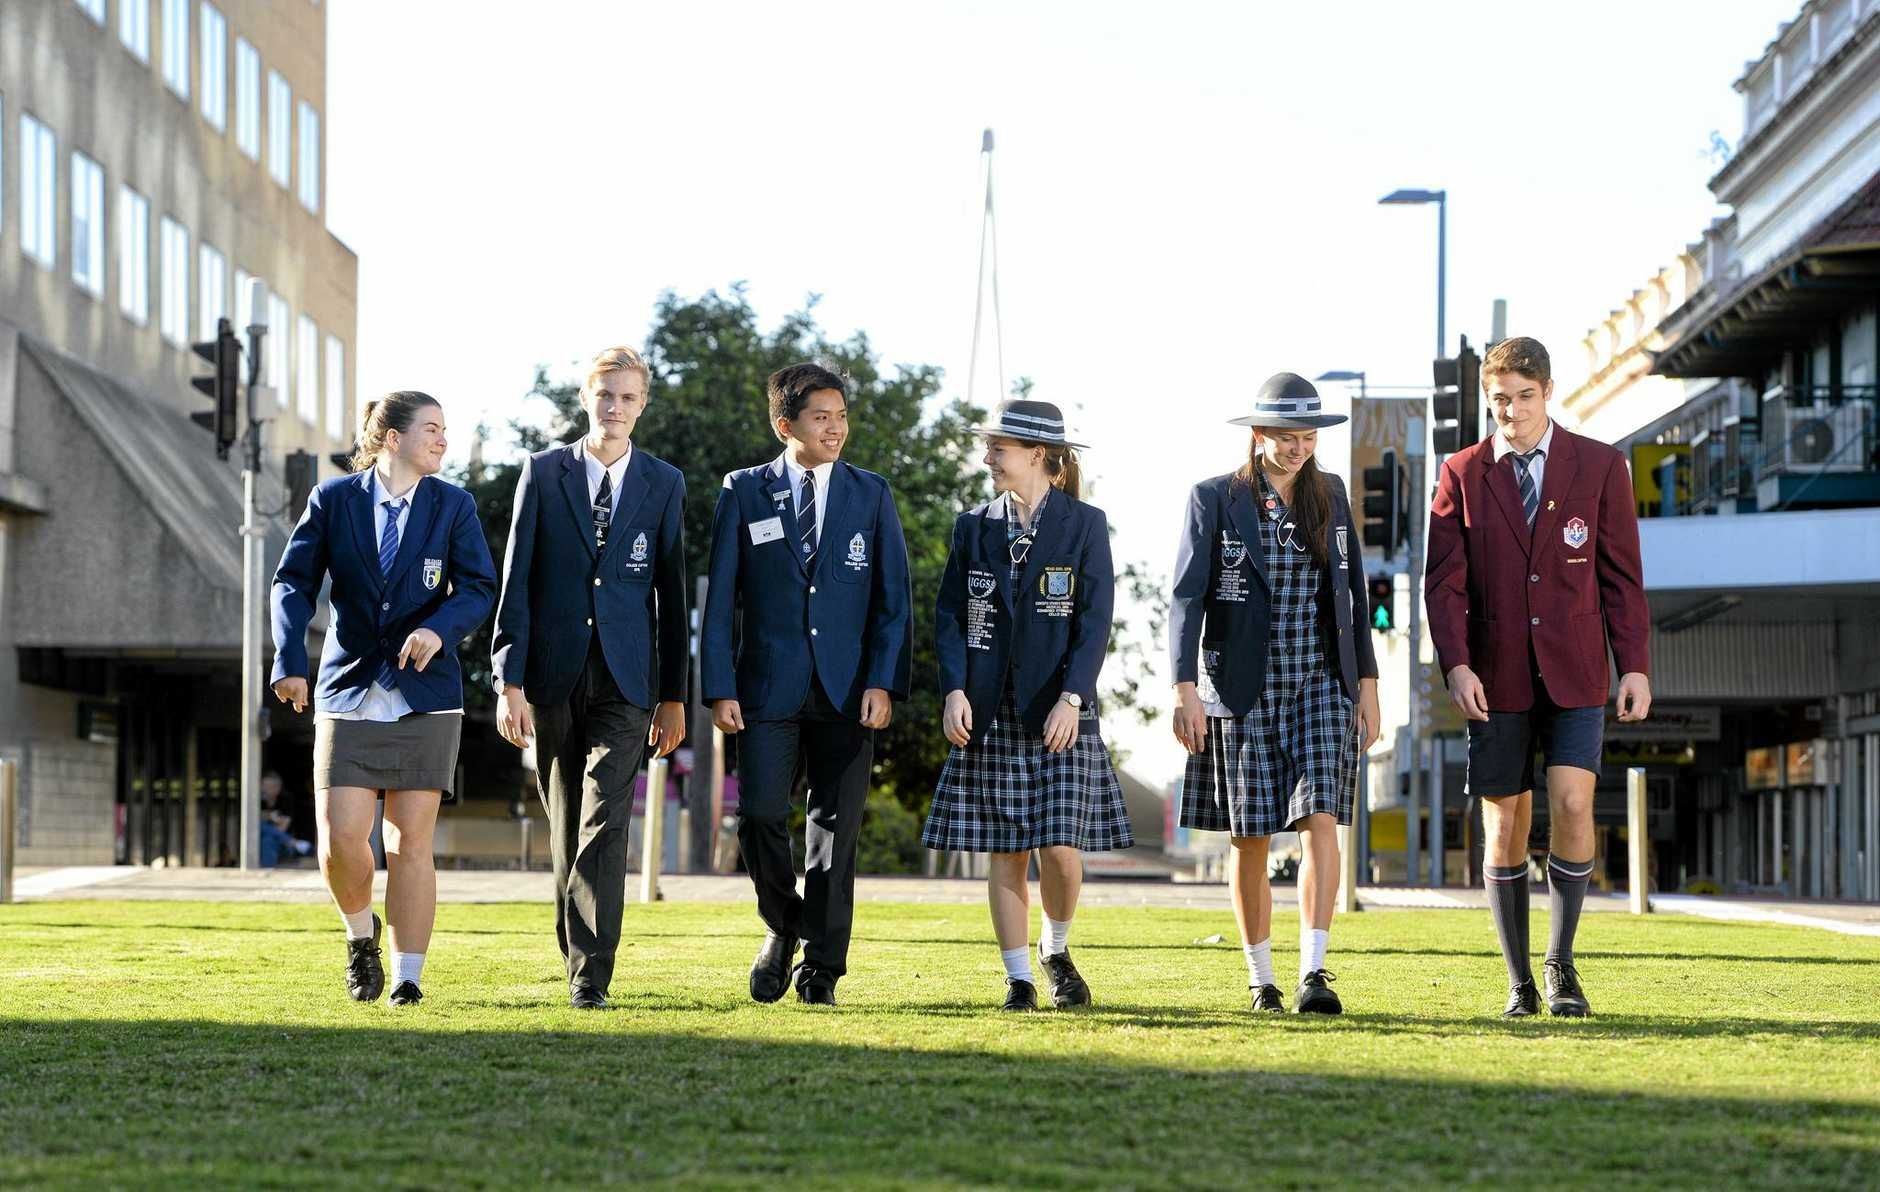 School captains from various Ipswich schools have joined forces to form a school leaders network. Samoi Kinsella, d'Arcy Witherspoon, Gideon Caturia, Lillian Horneman - Wren, Rosie Harris and Ben Fisher.